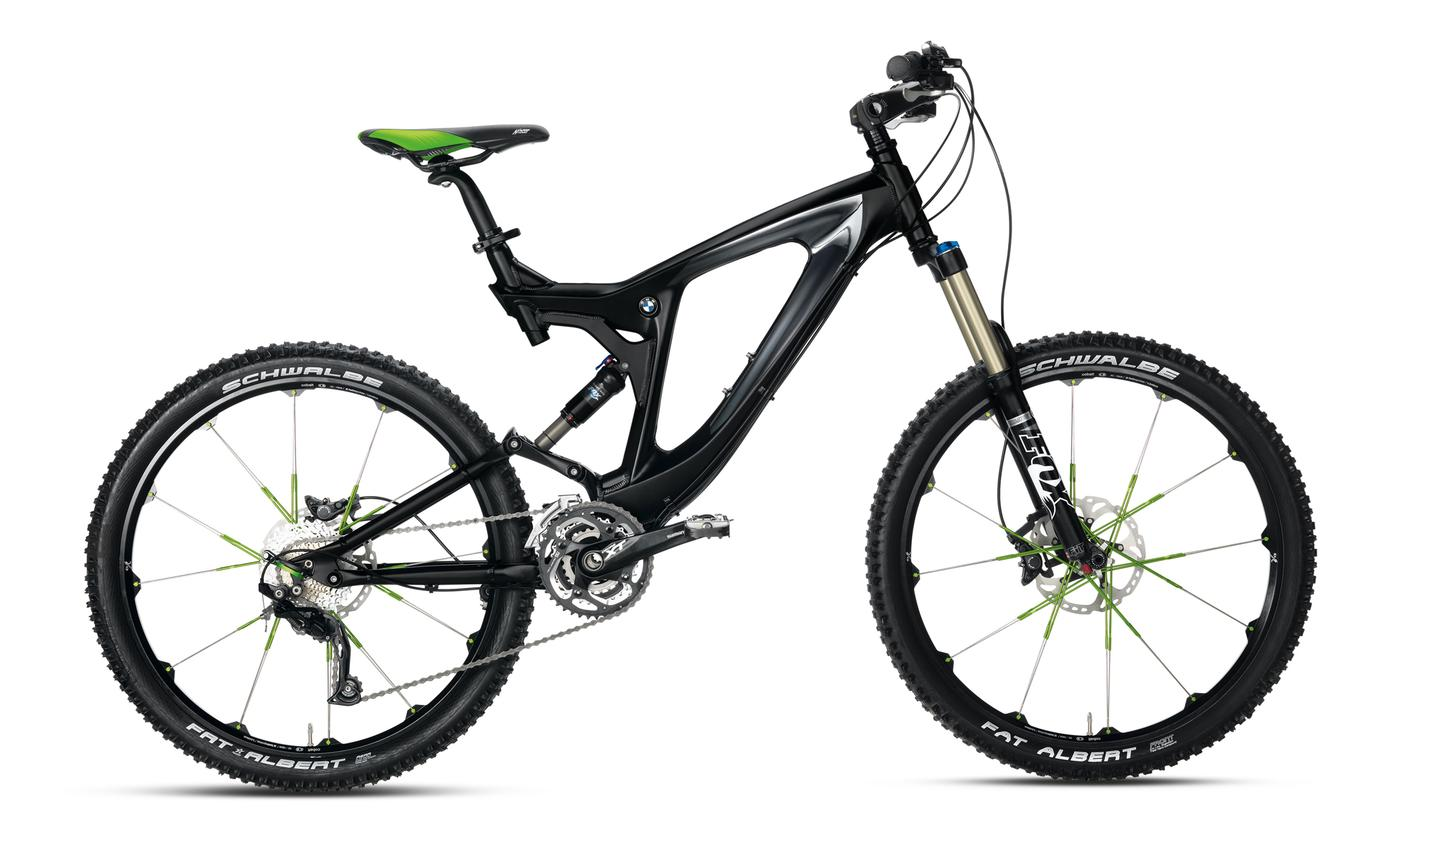 BMW's 2012 Mountainbike Enduro boasts the most changes from the 2011 model